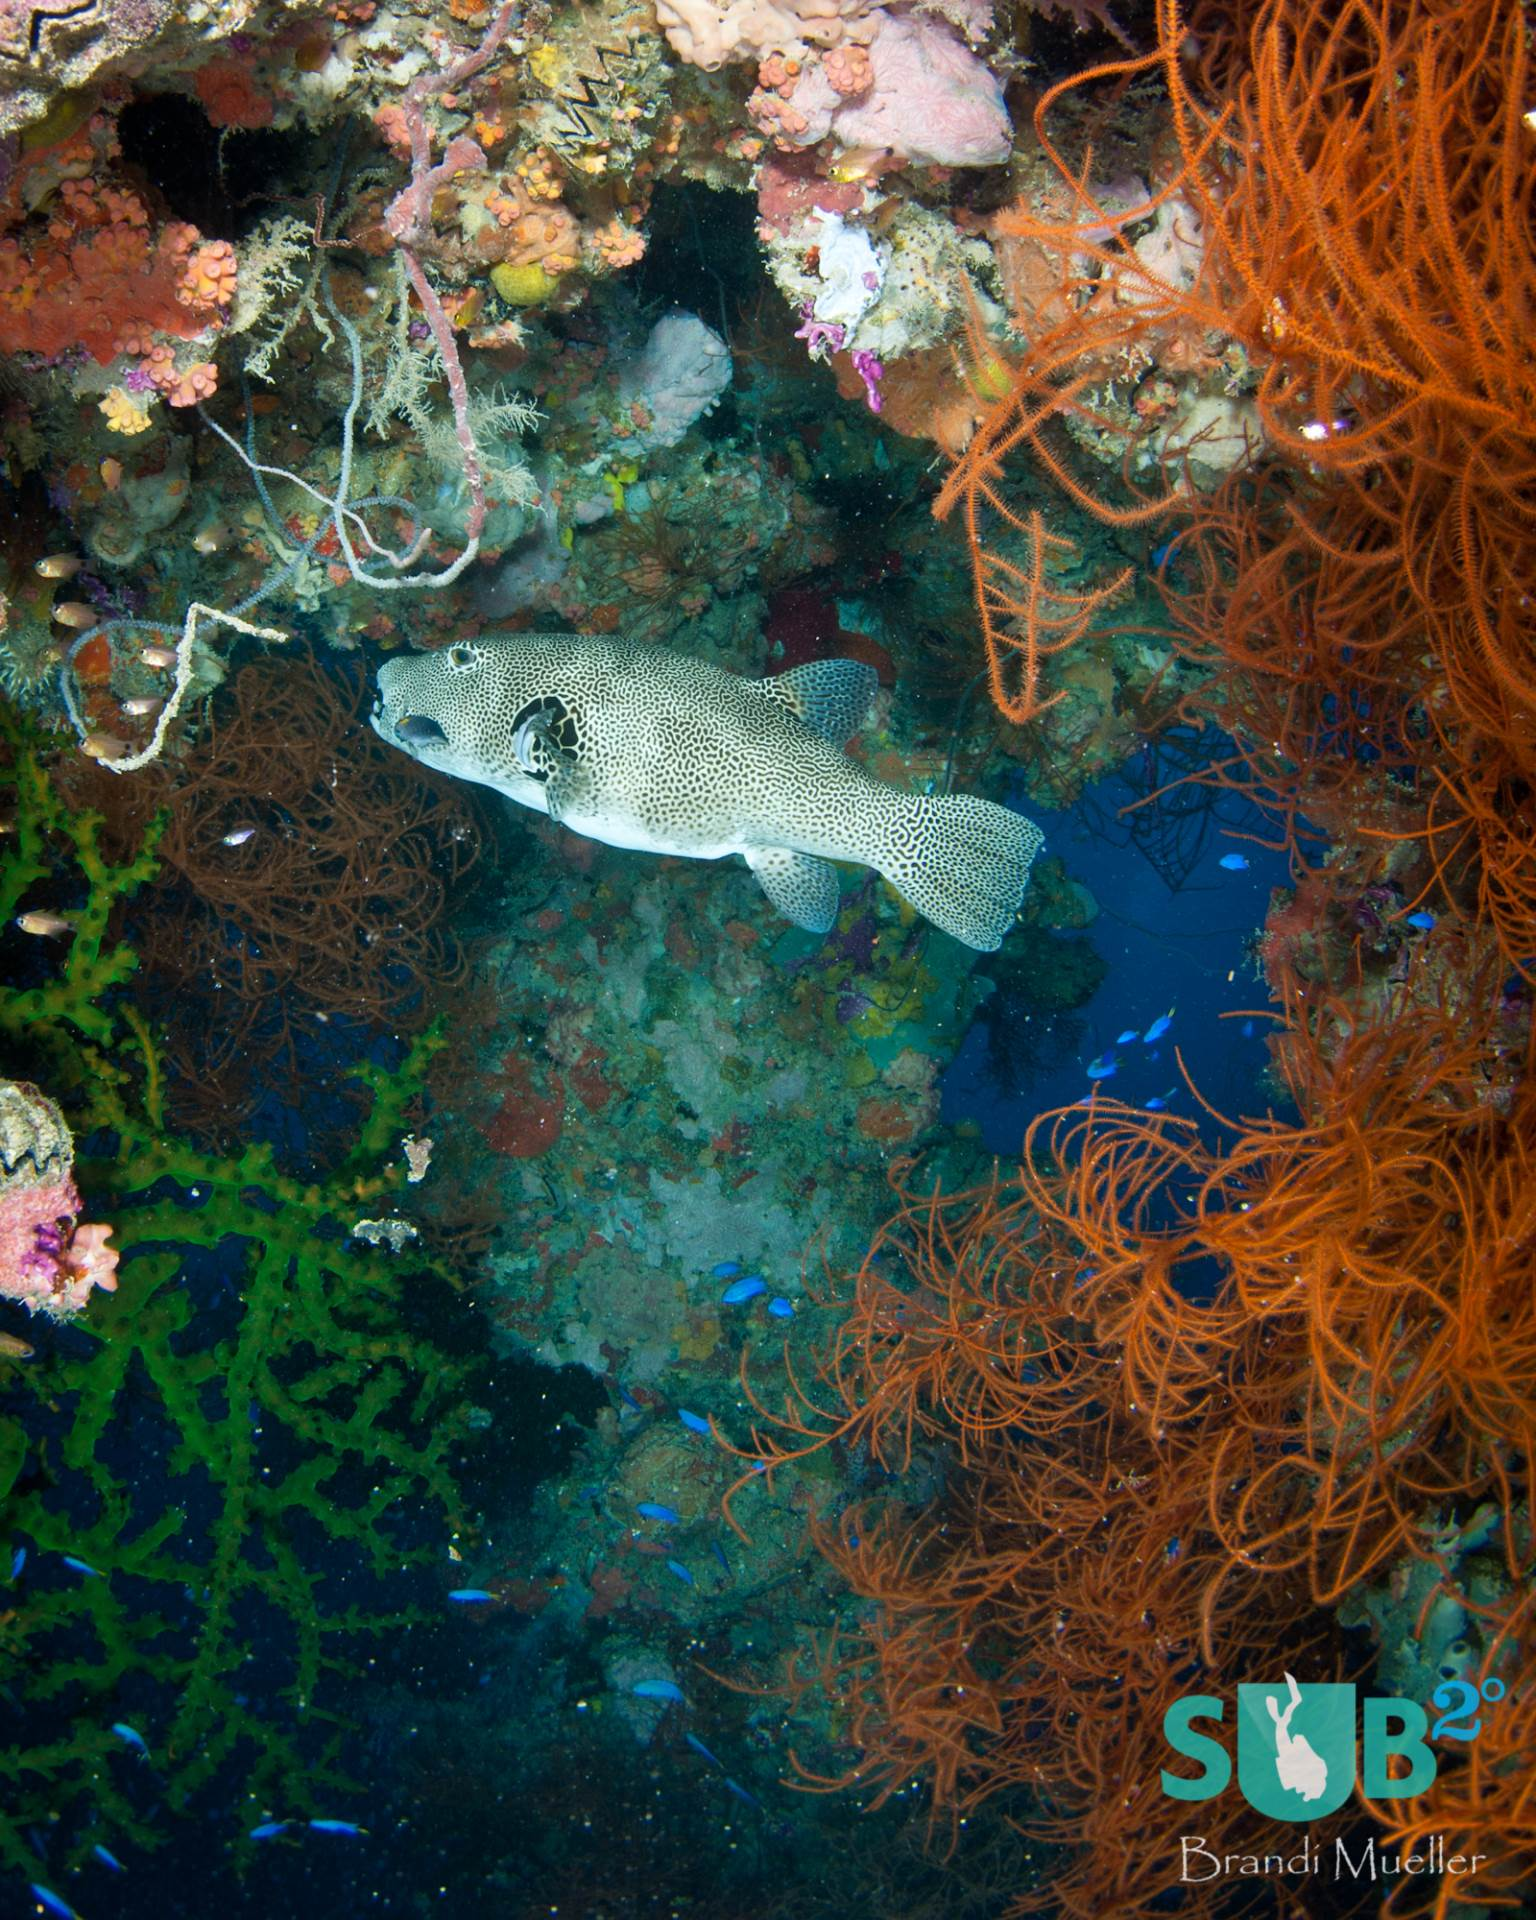 Underwater since 1944, the Shinkoku Maru was sunk during WWII.  Now it is covered in corals and home to much ocean life.